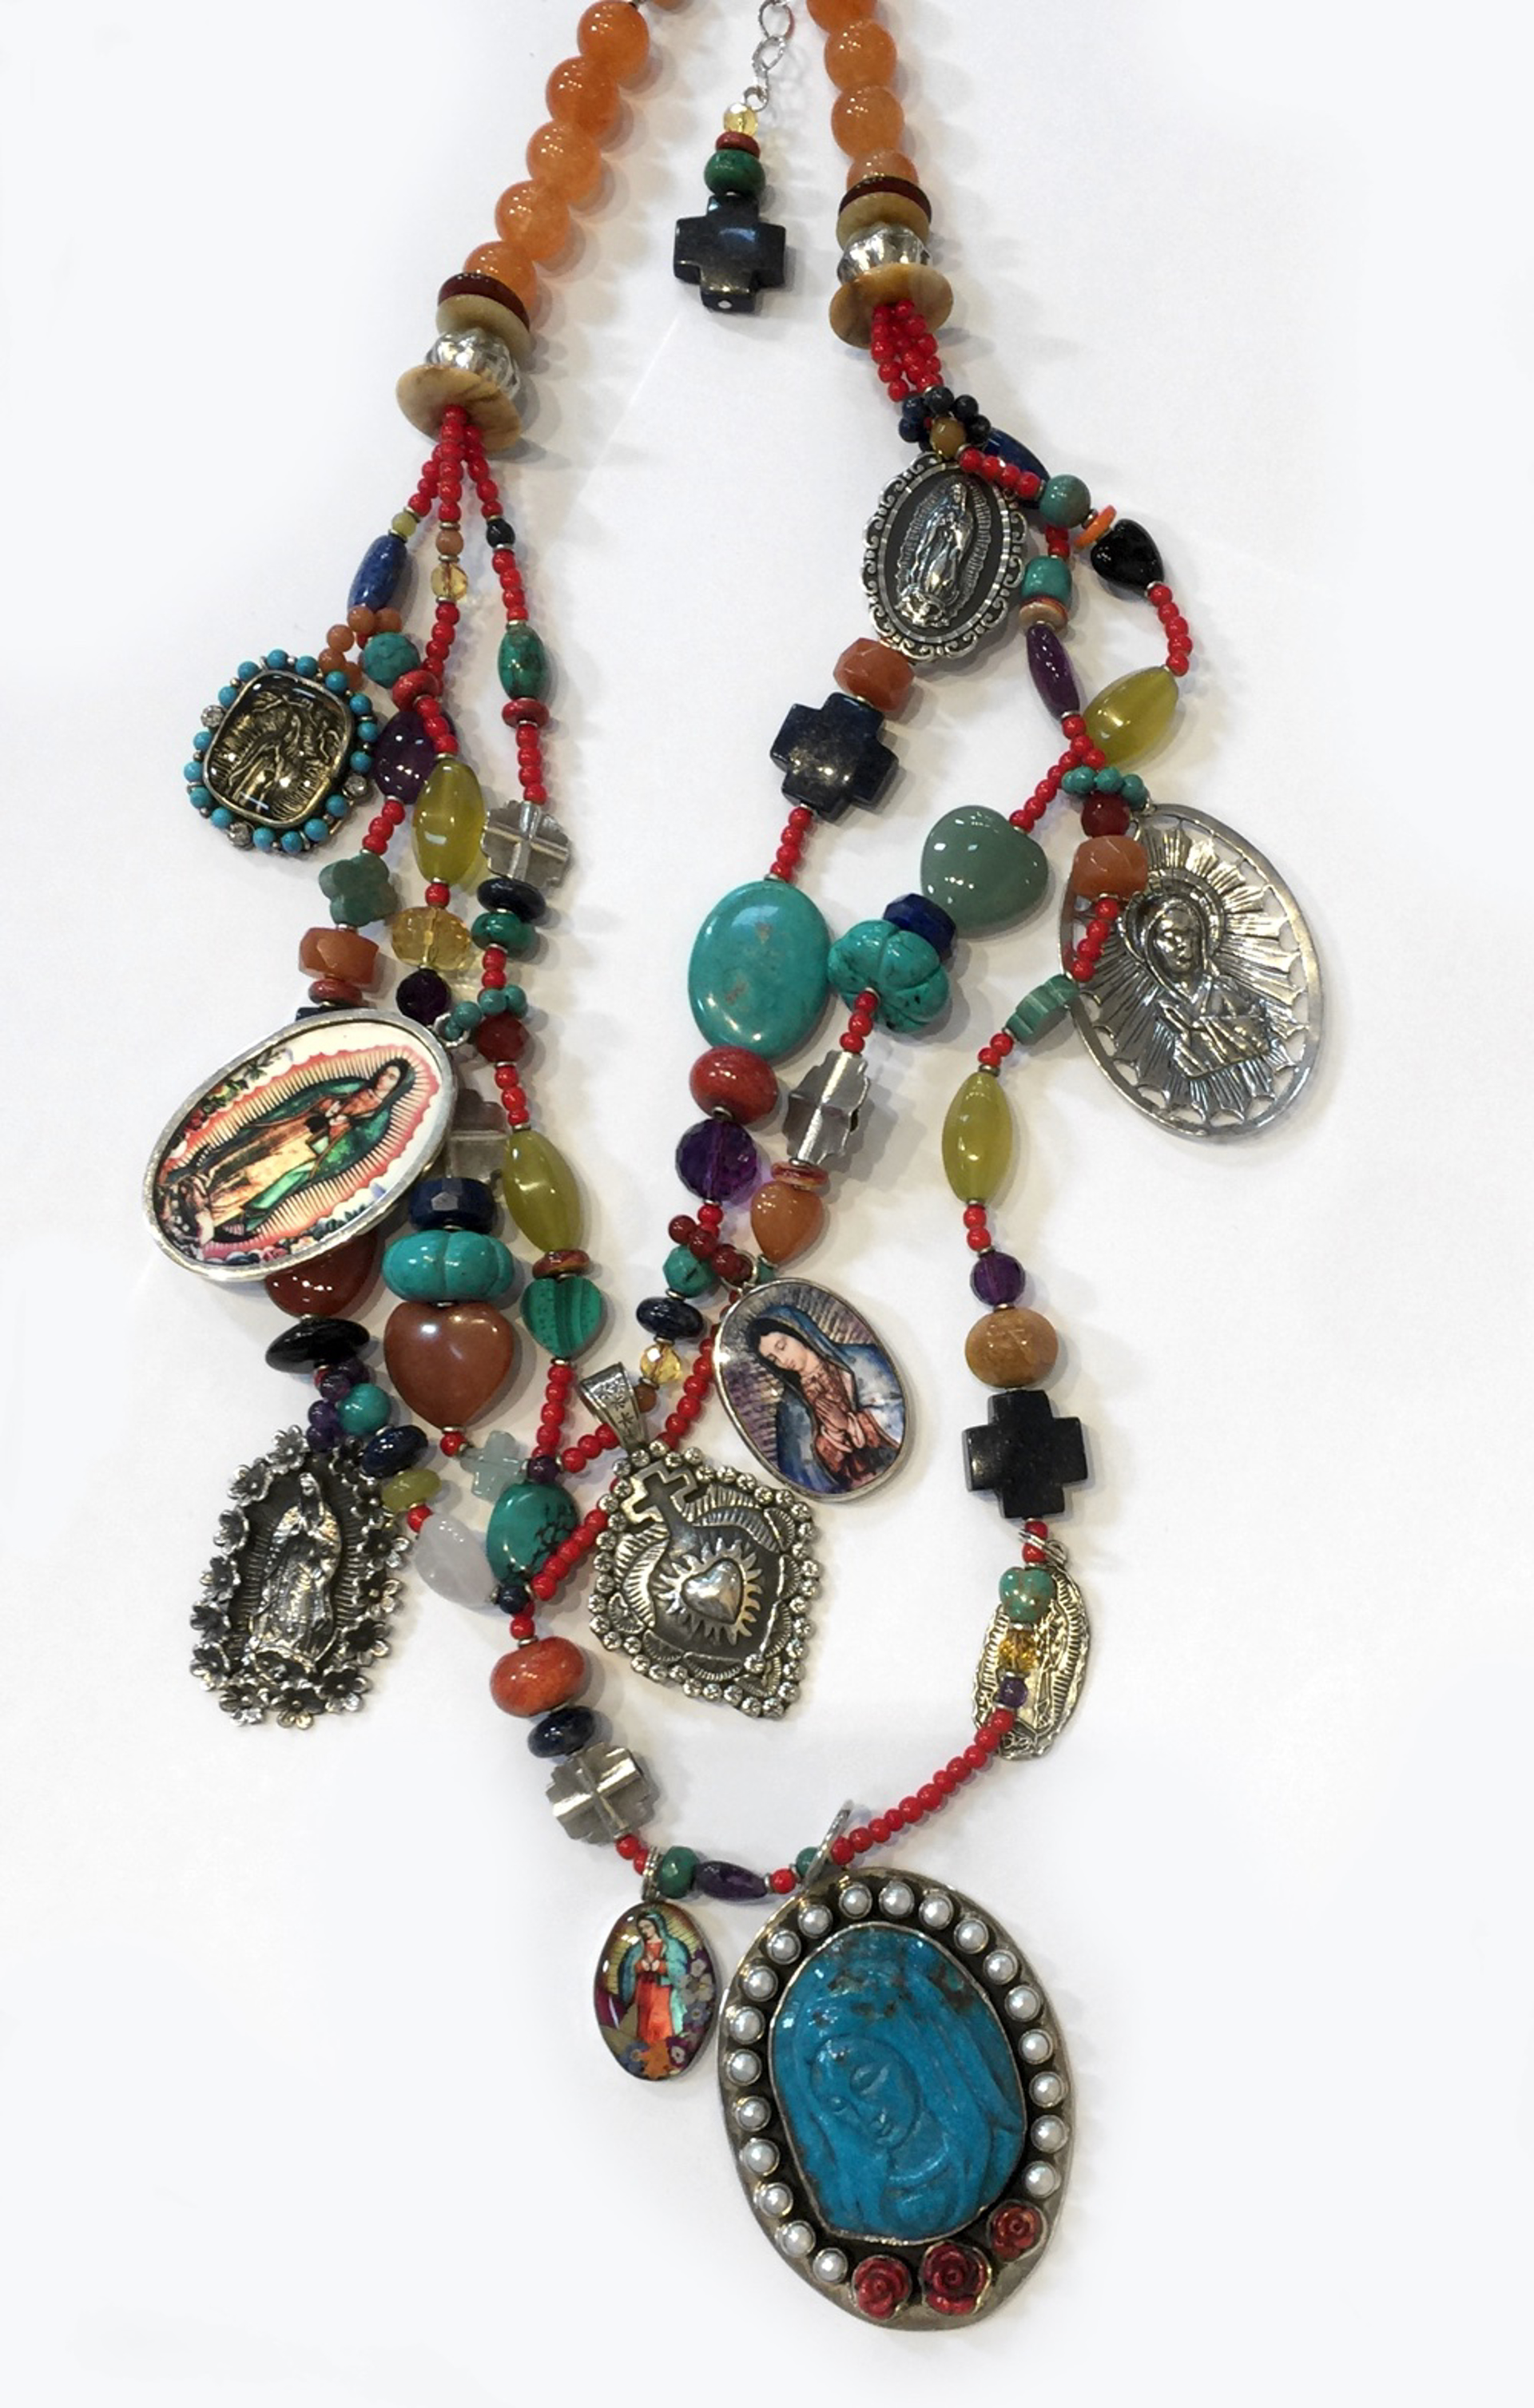 KY 1331 - 3 Strand necklace - Turquoise guadalupes, sombreros, Rusts, yellows by Kim Yubeta